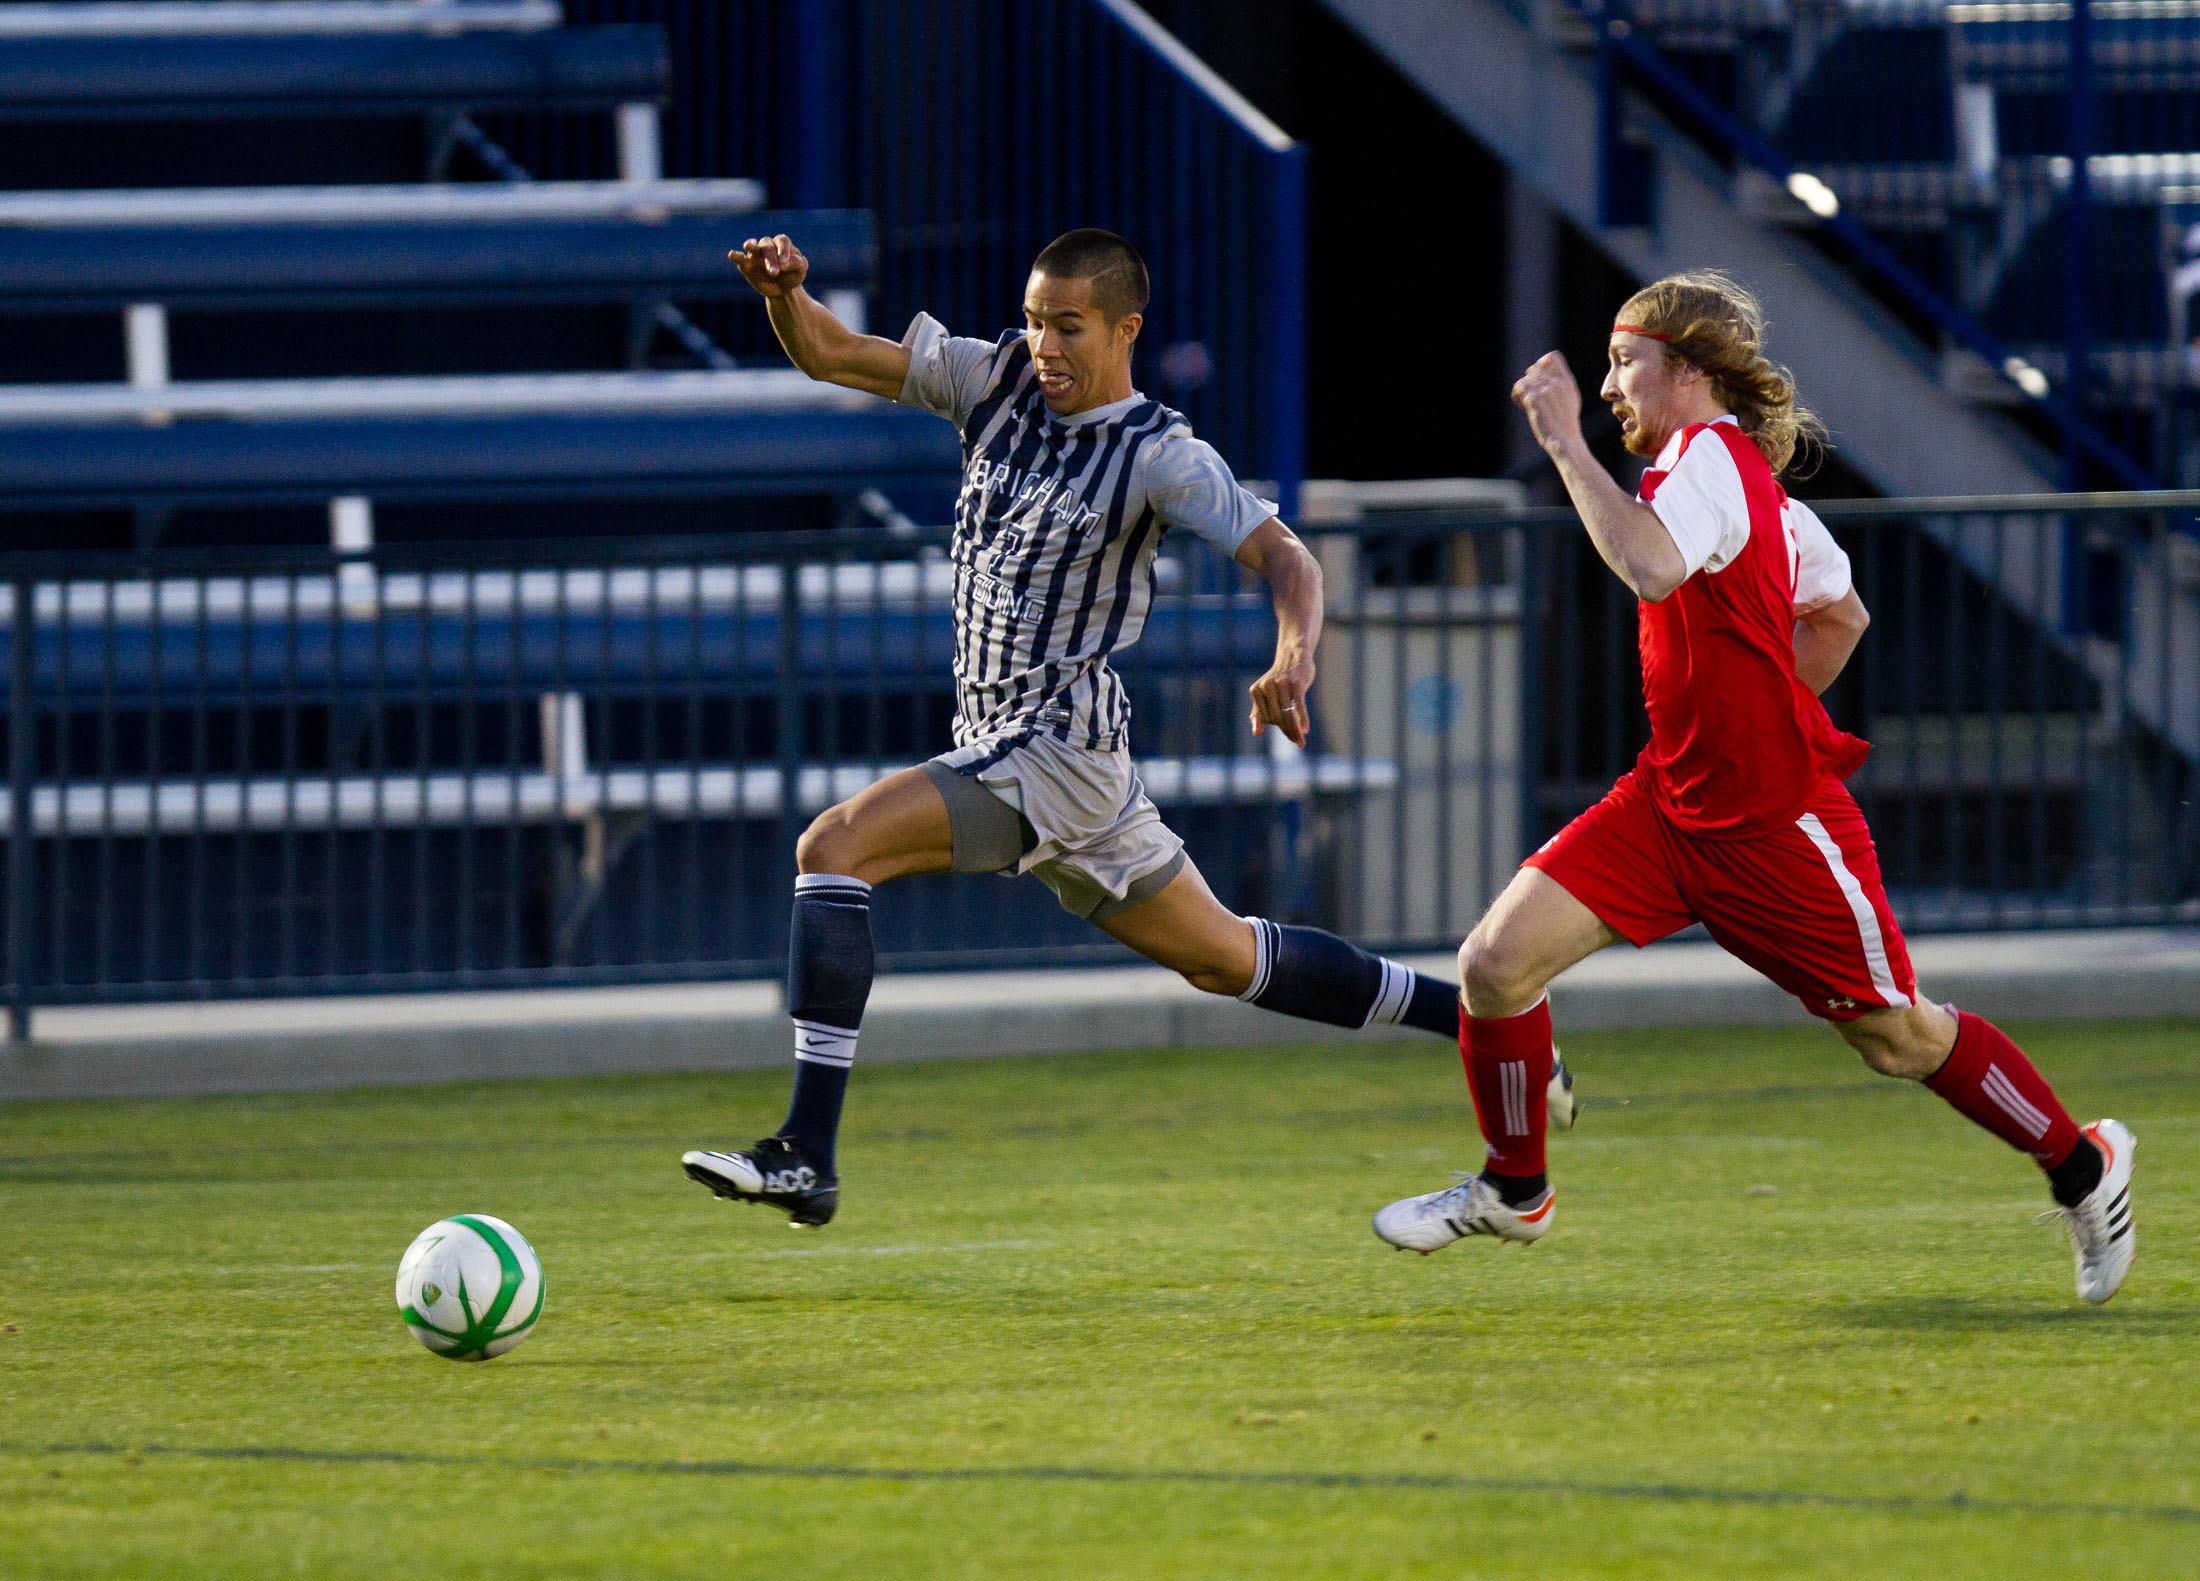 Garrett Gee attempts to outrun a player. (Photo by Sarah Hill)